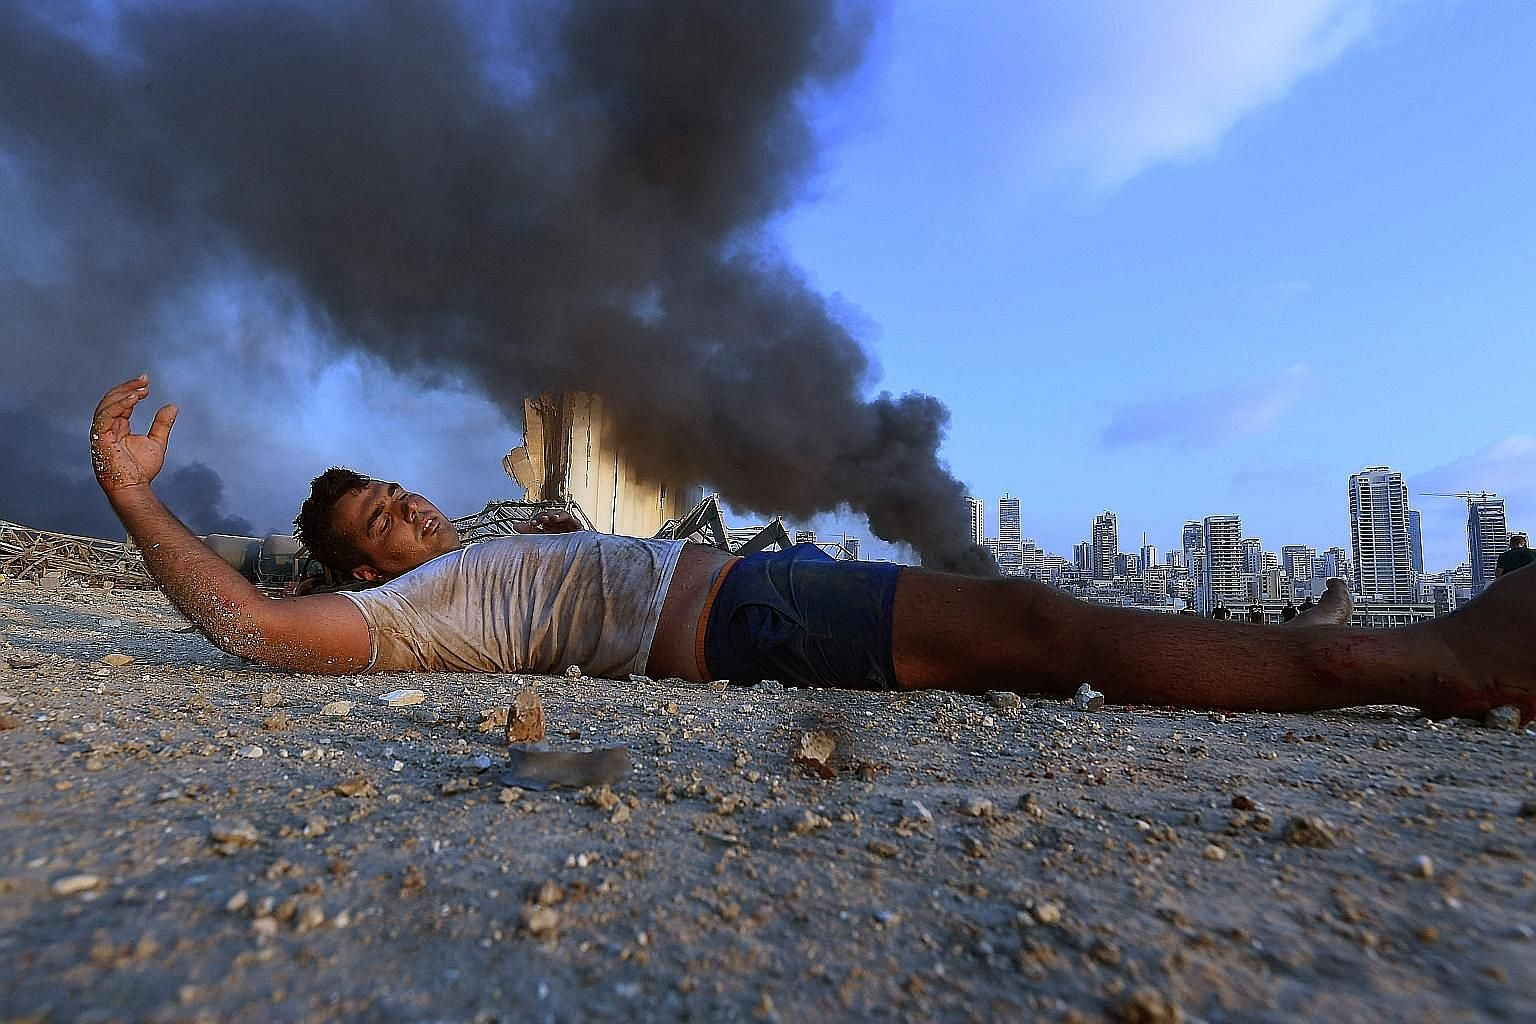 A boy lying injured amid debris as smoke billowed in the background at the scene of a massive explosion that hit the port of Beirut in the heart of the Lebanese capital on Tuesday. Lebanon will need a rapid influx of aid to stave off a critical food